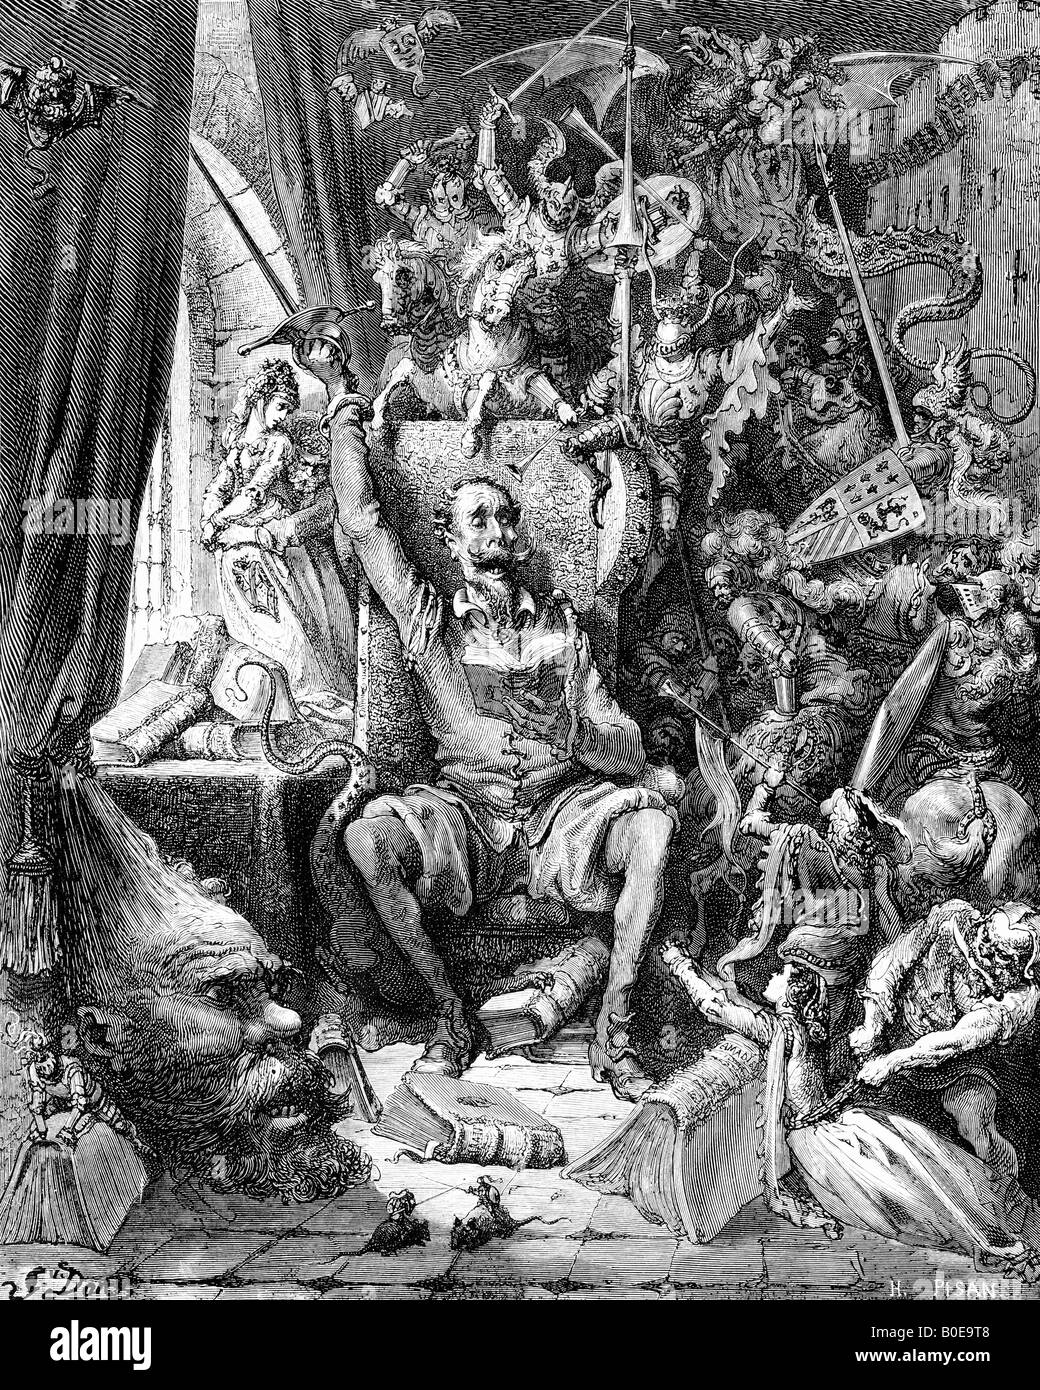 Engraving of Gustave Dore illustration of Don Quixote in